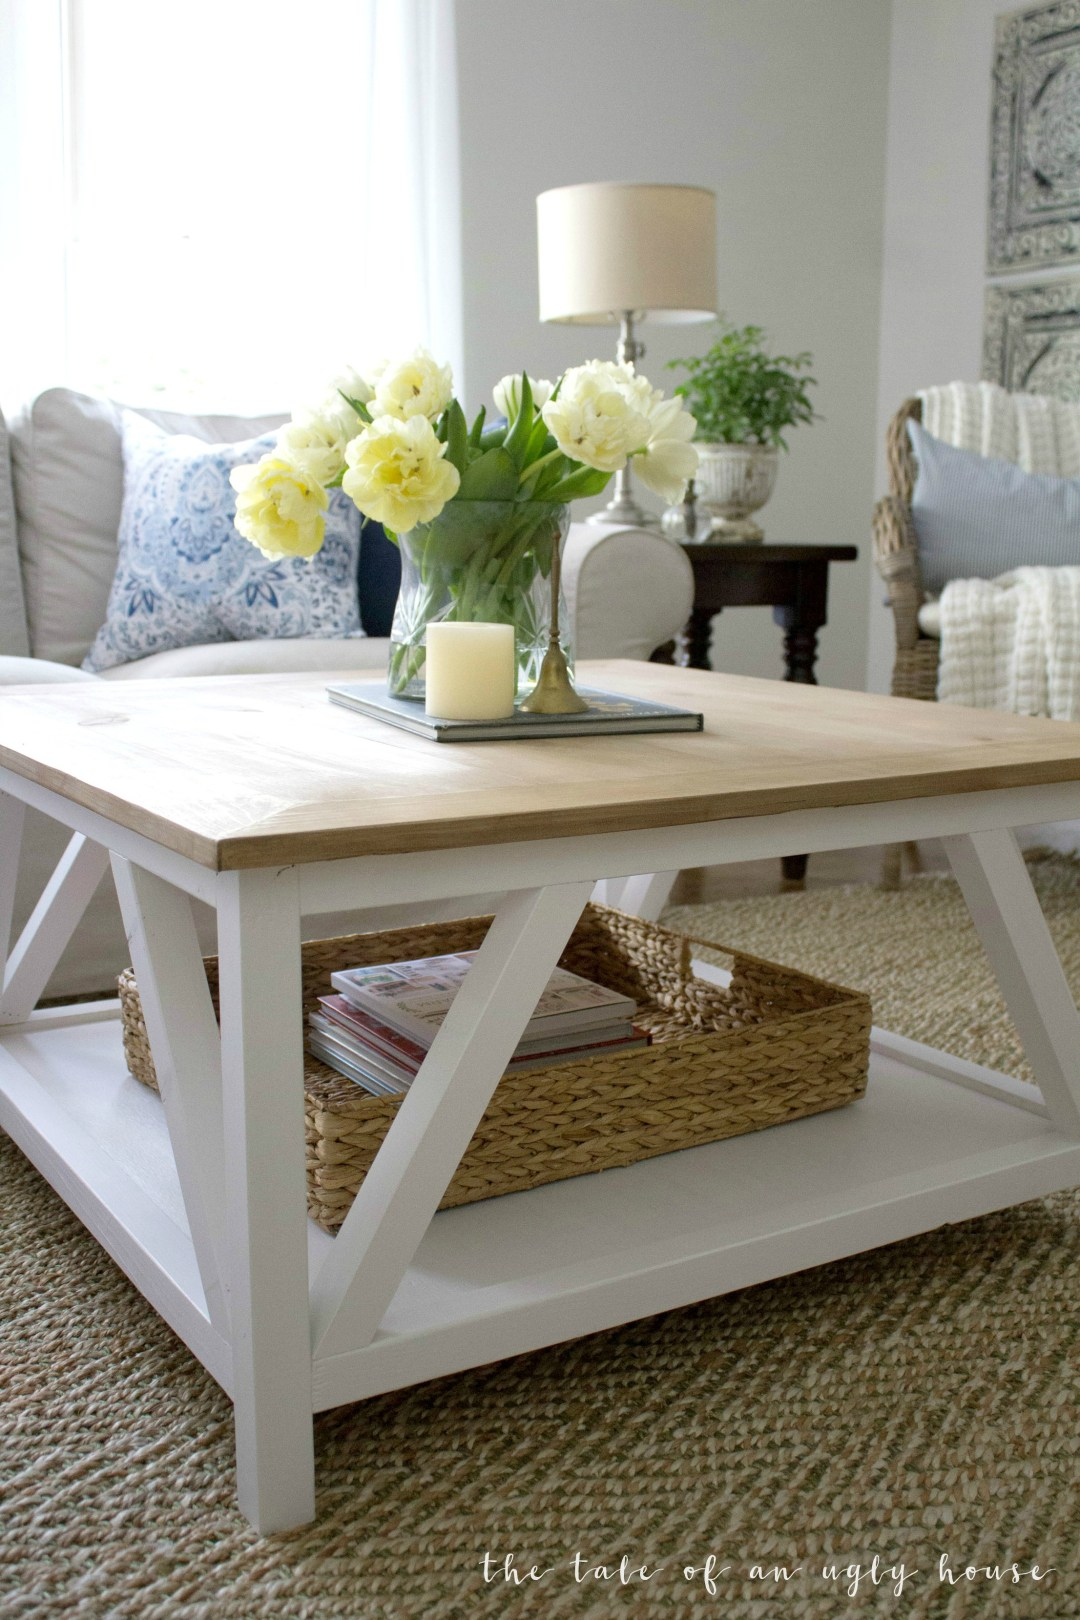 Diy modern farmhouse coffee table sincerely marie designs for Modern farmhouse coffee table